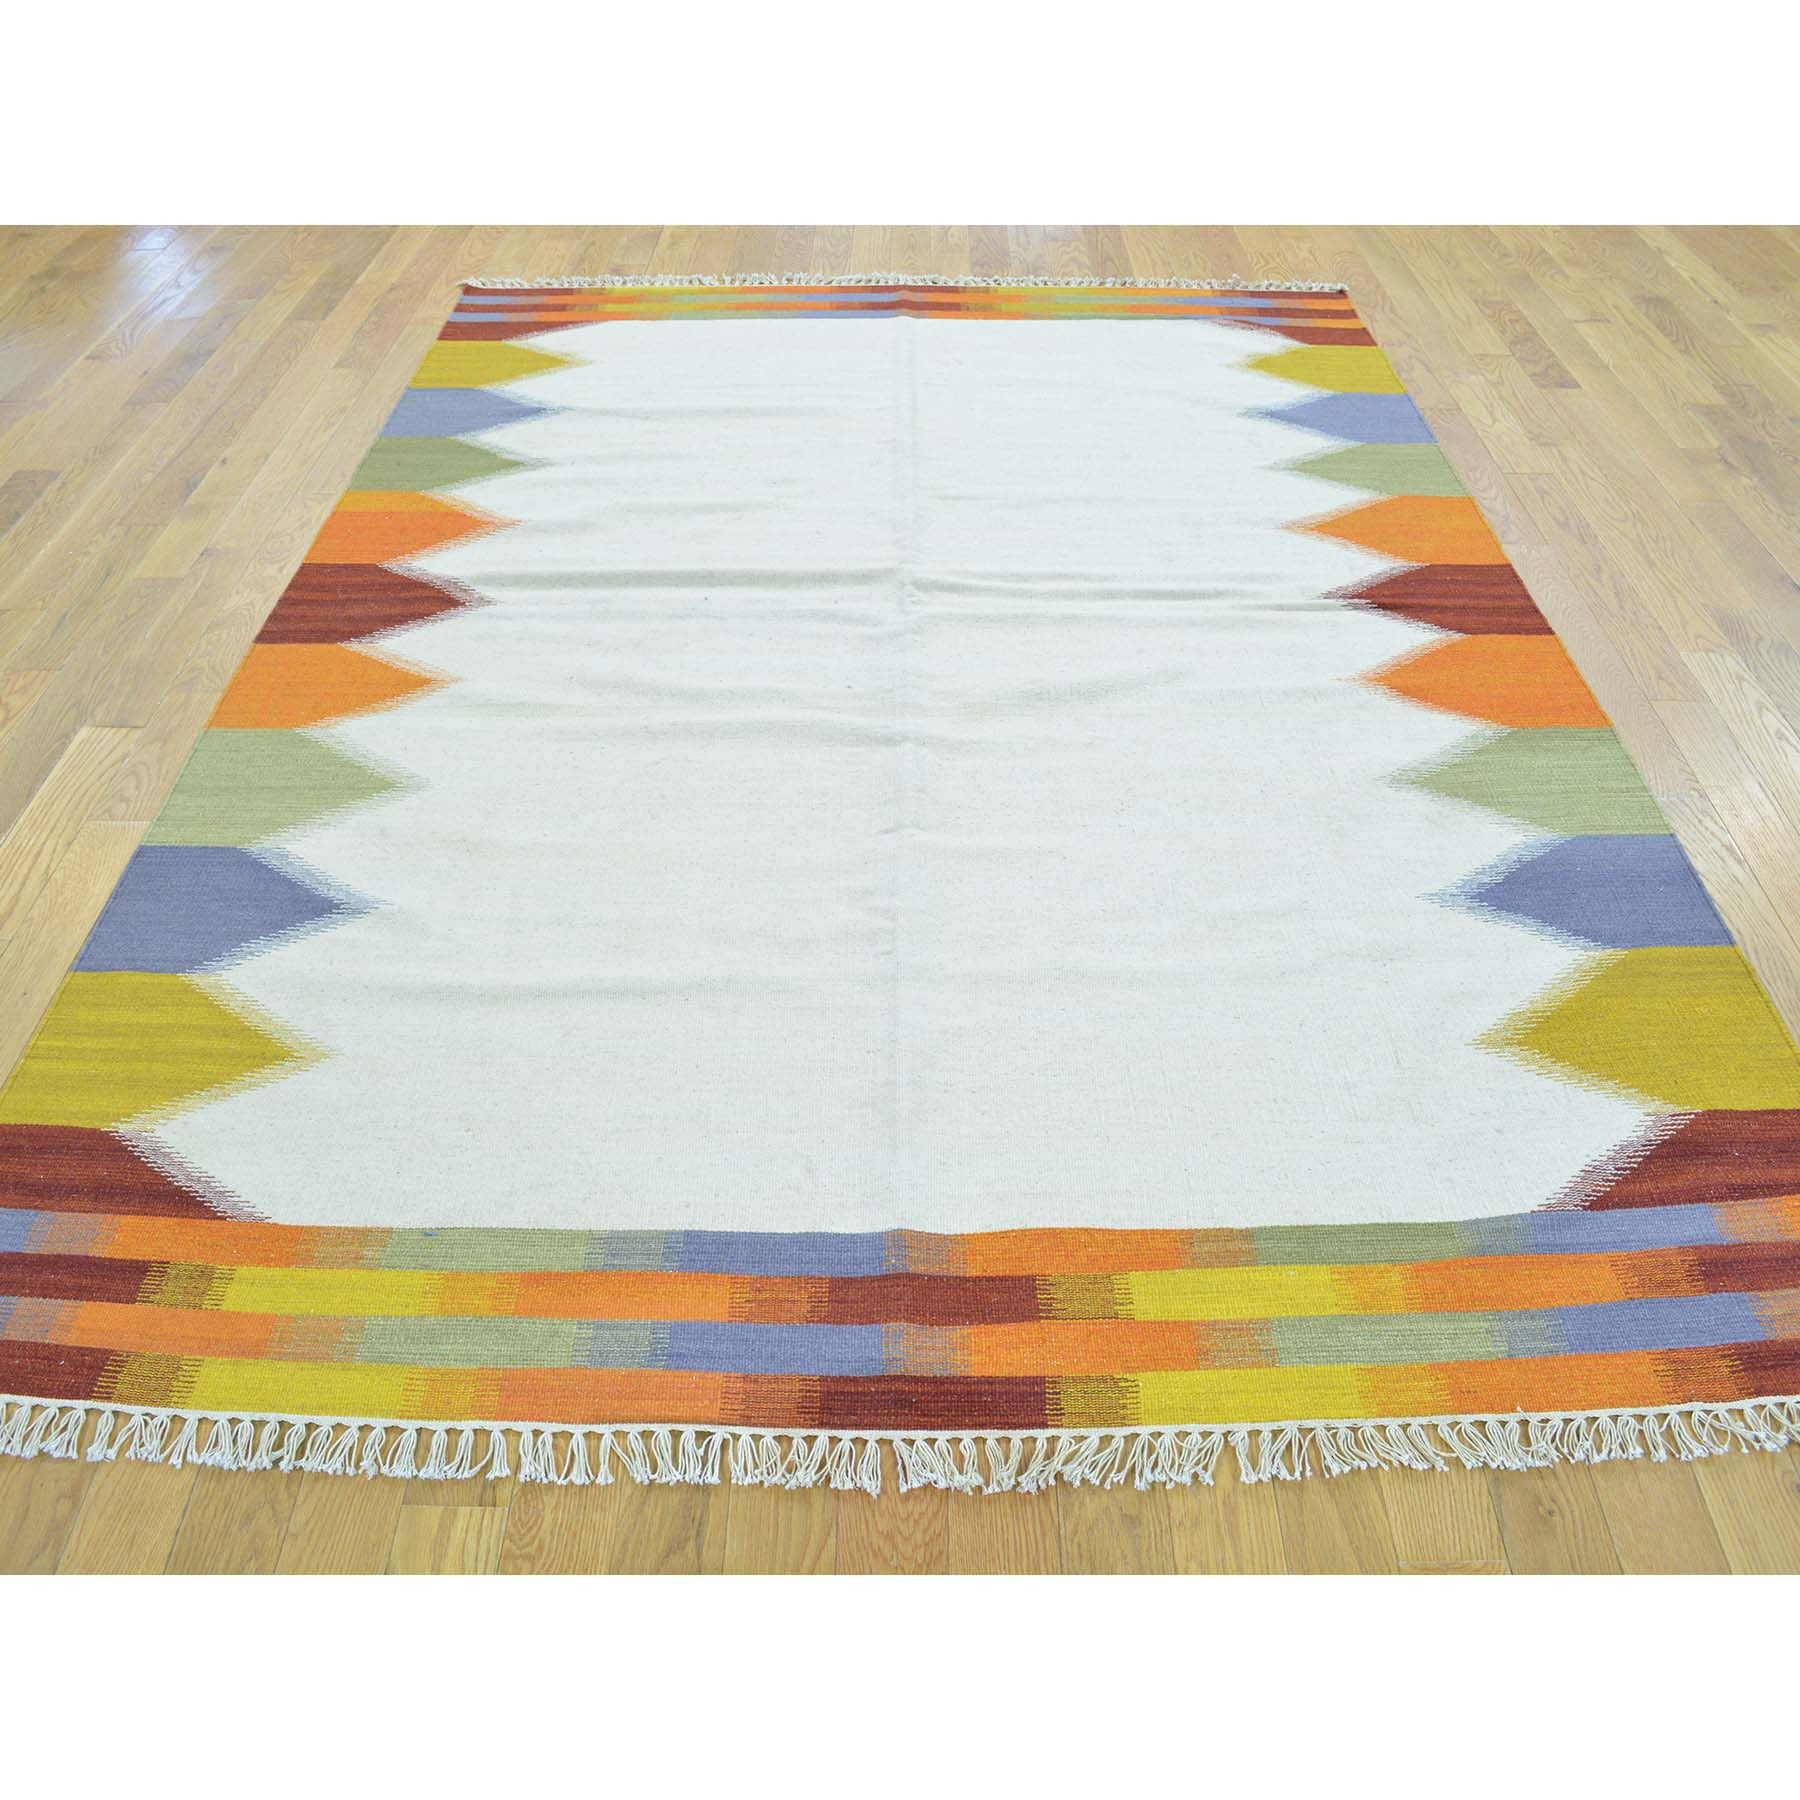 "Handmade Flat Weave Rectangle Rug > Design# SH30077 > Size: 5'-5"" x 7'-10"" [ONLINE ONLY]"